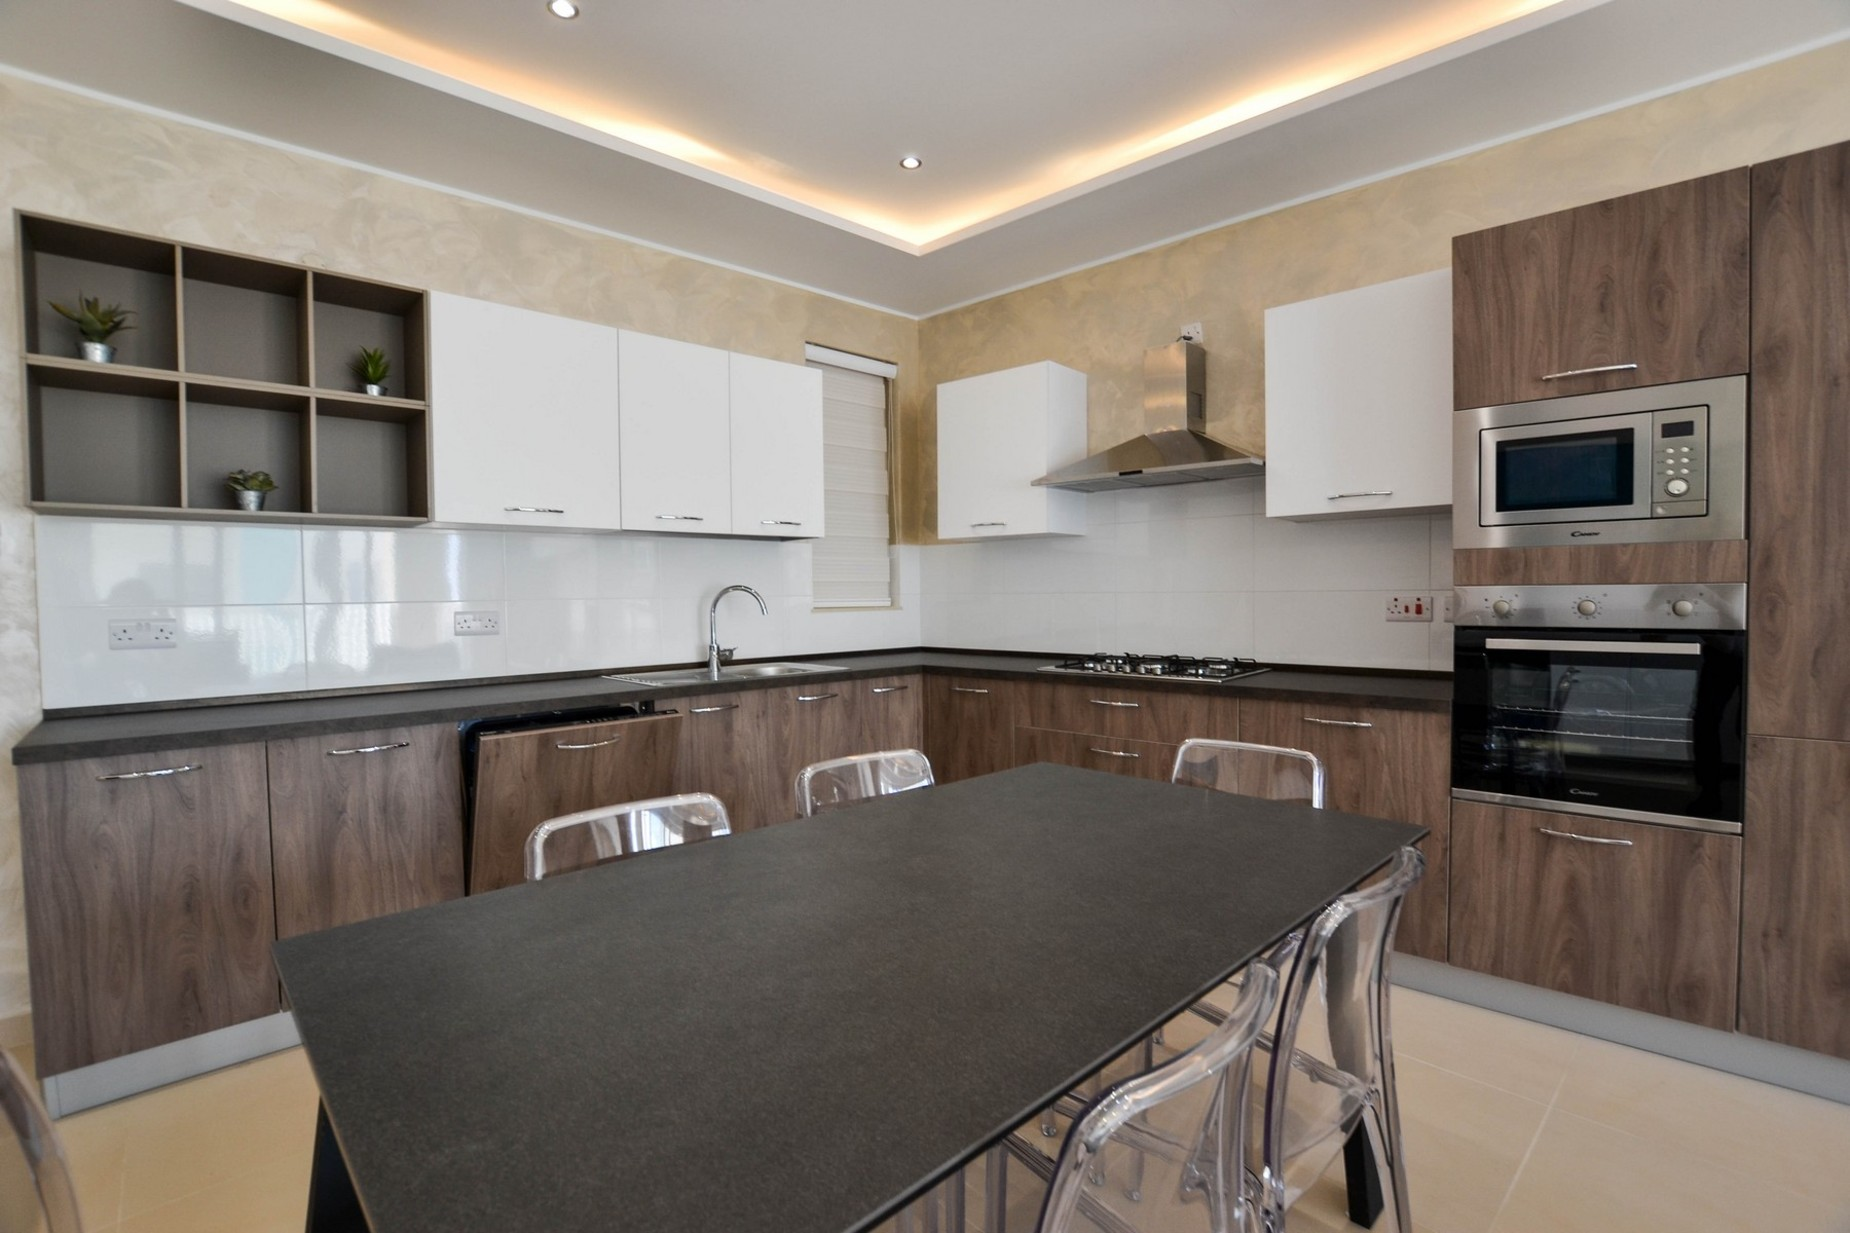 3 bed Apartment For Rent in St Andrews, St Andrews - thumb 2